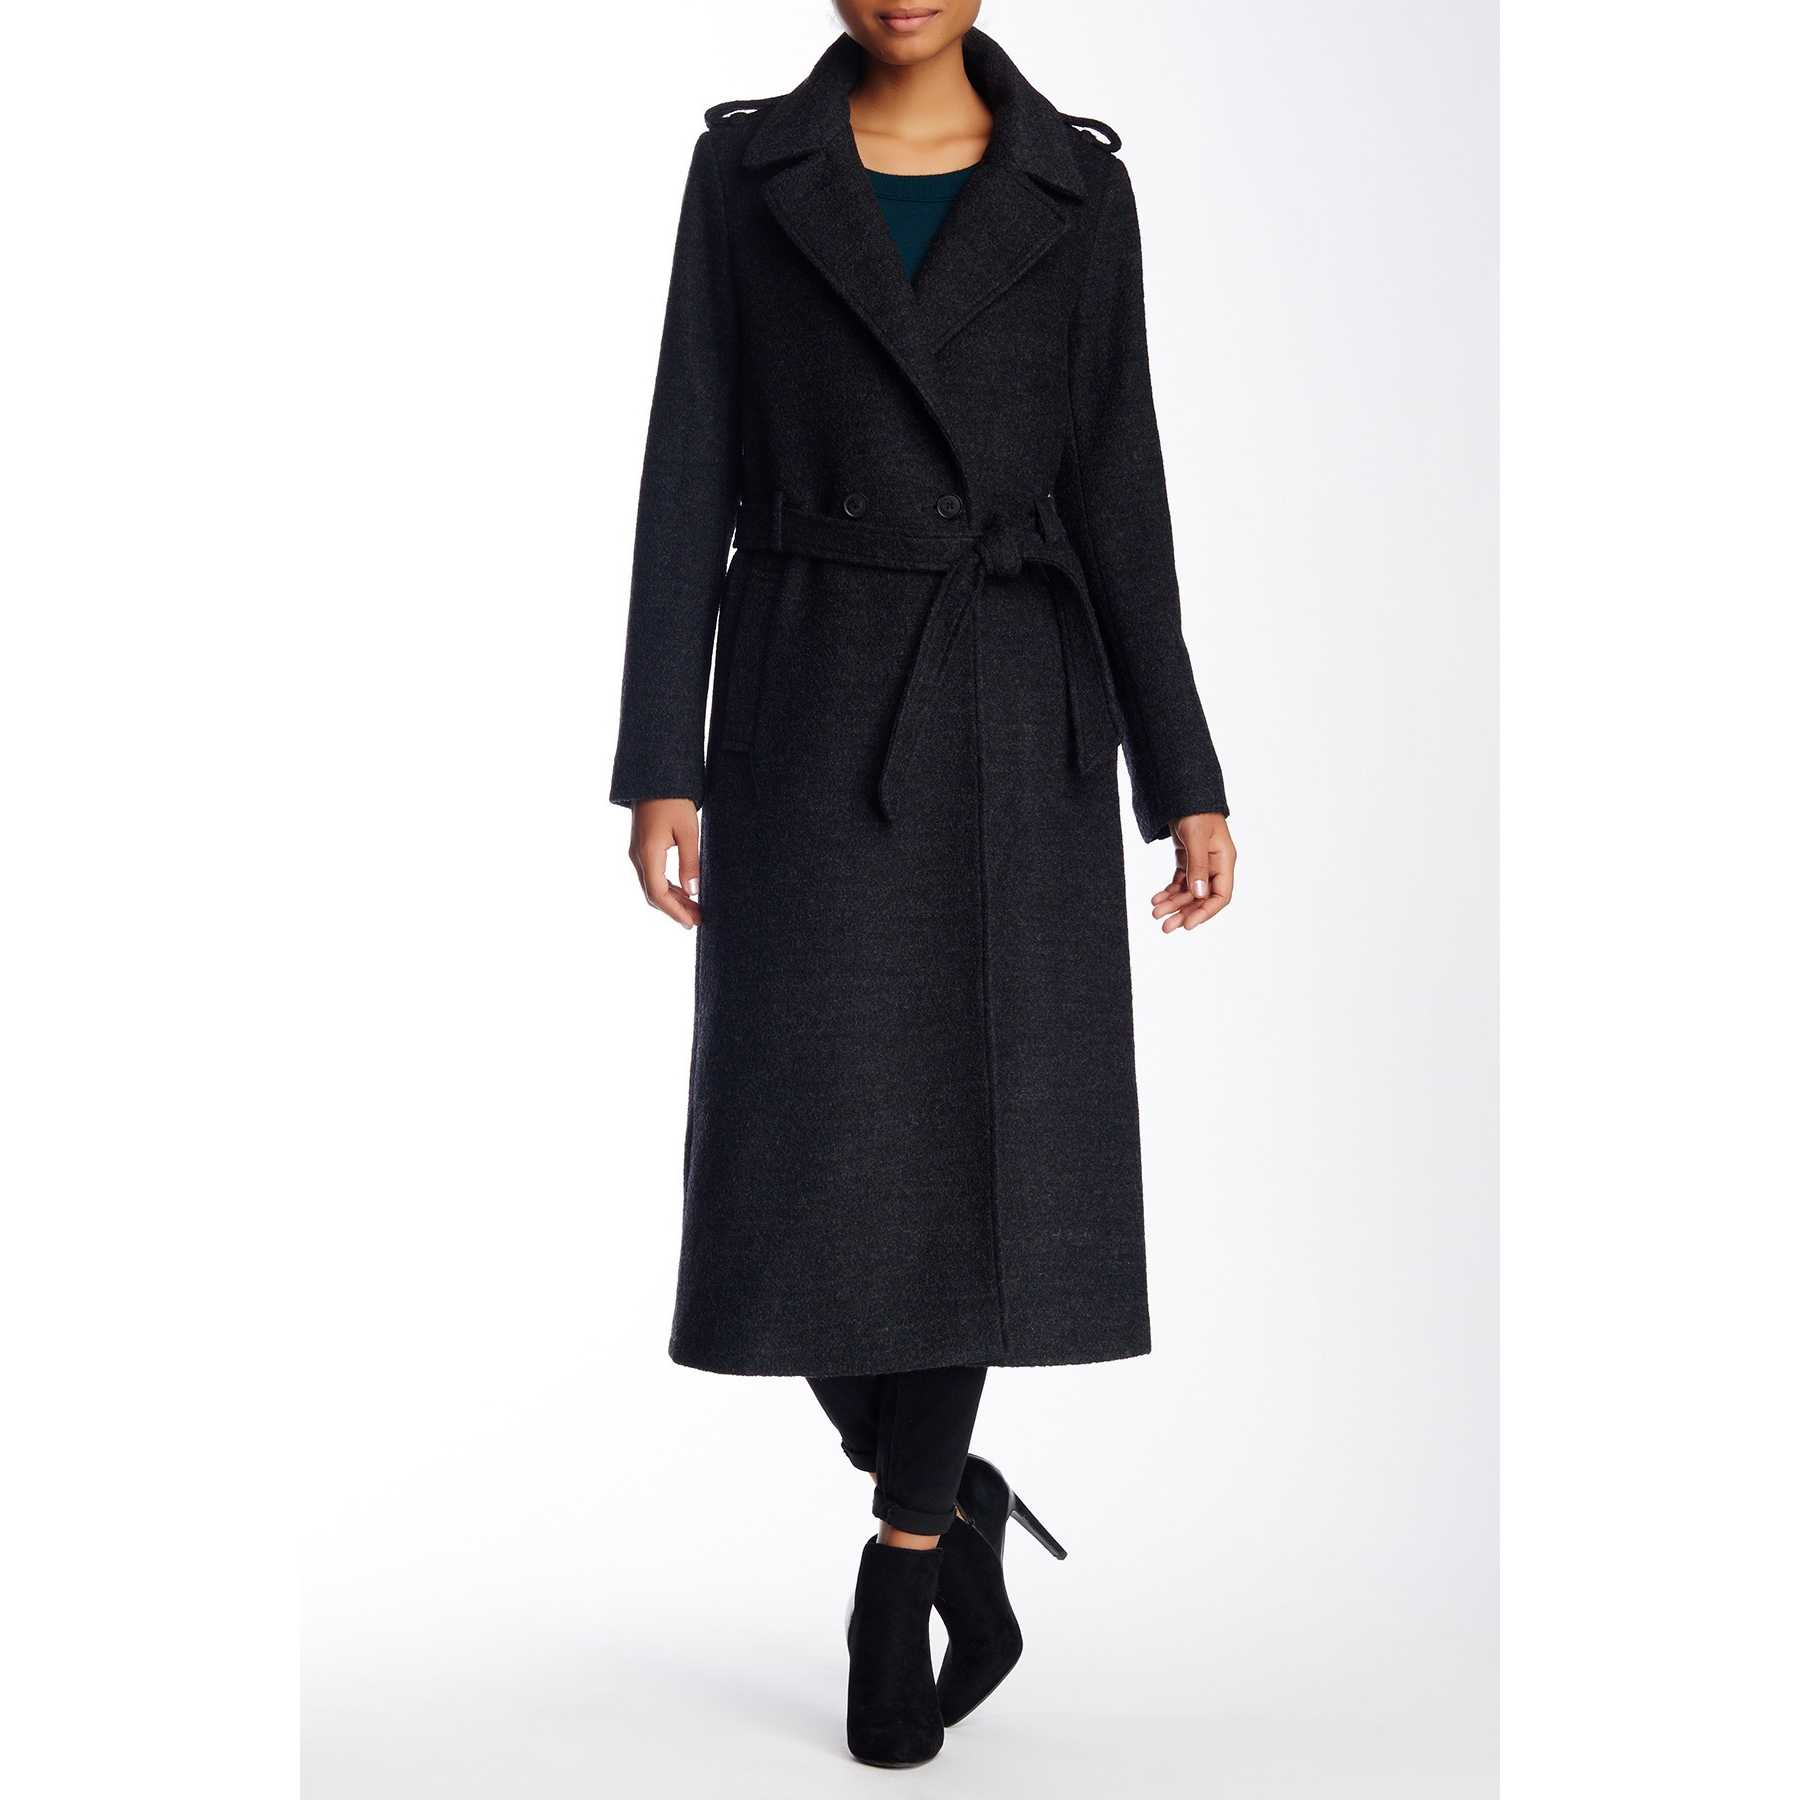 Soia Kyo Wool Blend Double Breasted Relaxed Trench CHARCOAL trench dama